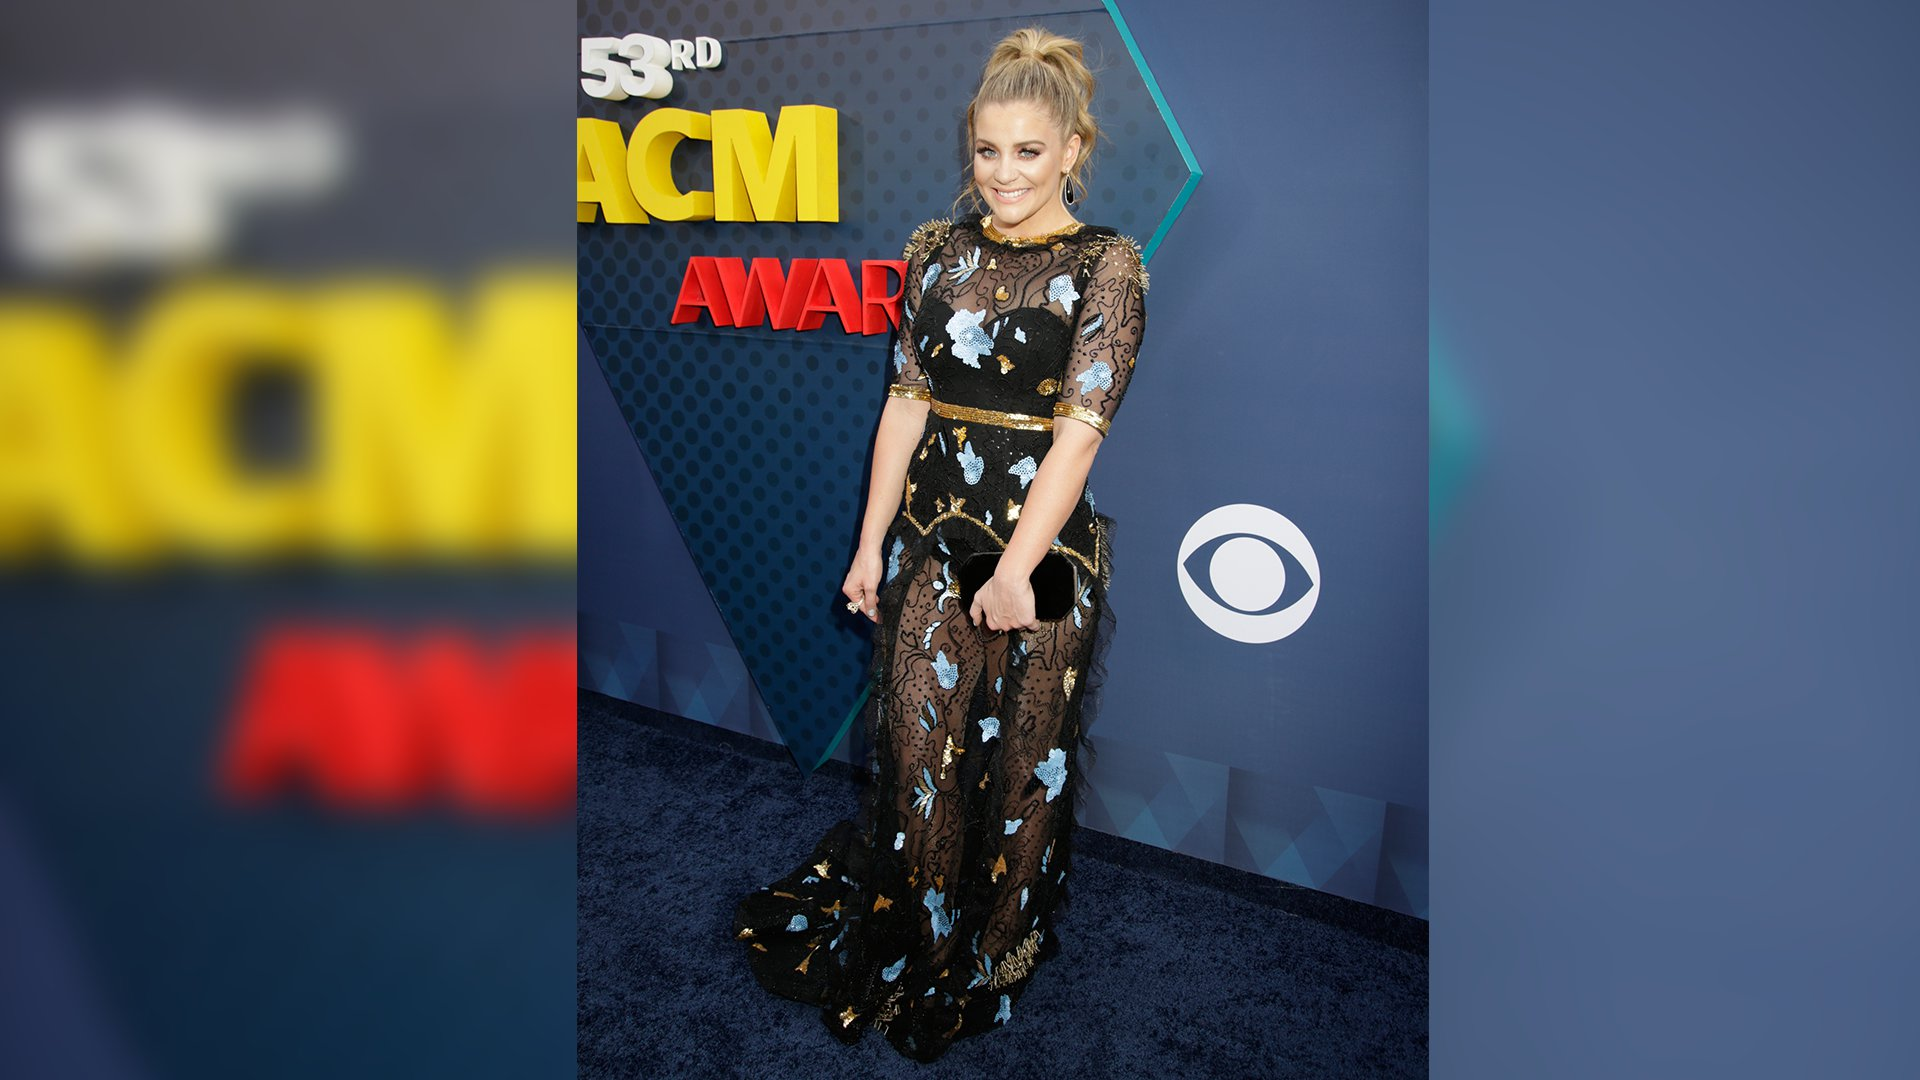 New Female Vocalist of the Year winner Lauren Alaina wears a high ponytail and heavenly black gown with floral appliqués.